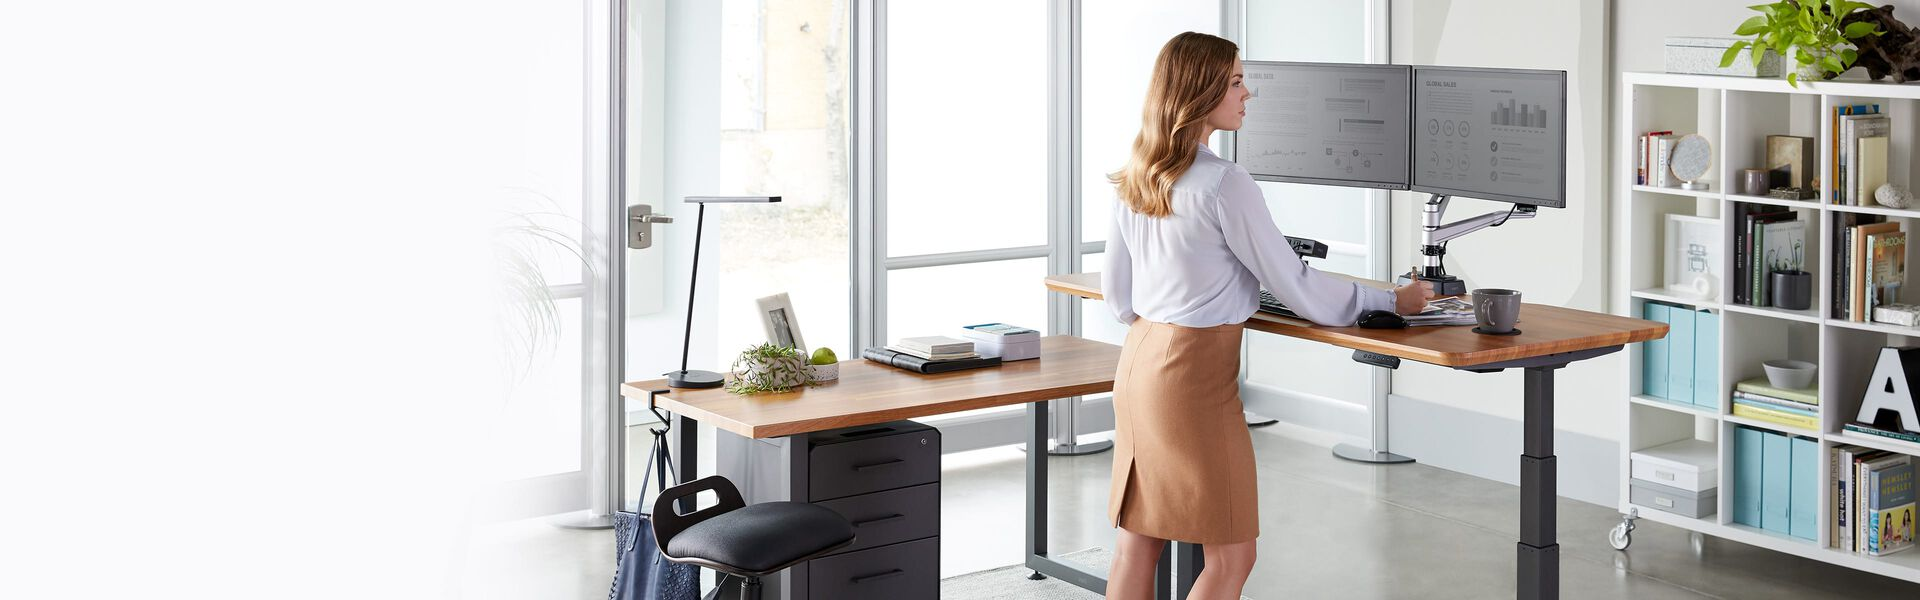 professional works in airy private office while standing